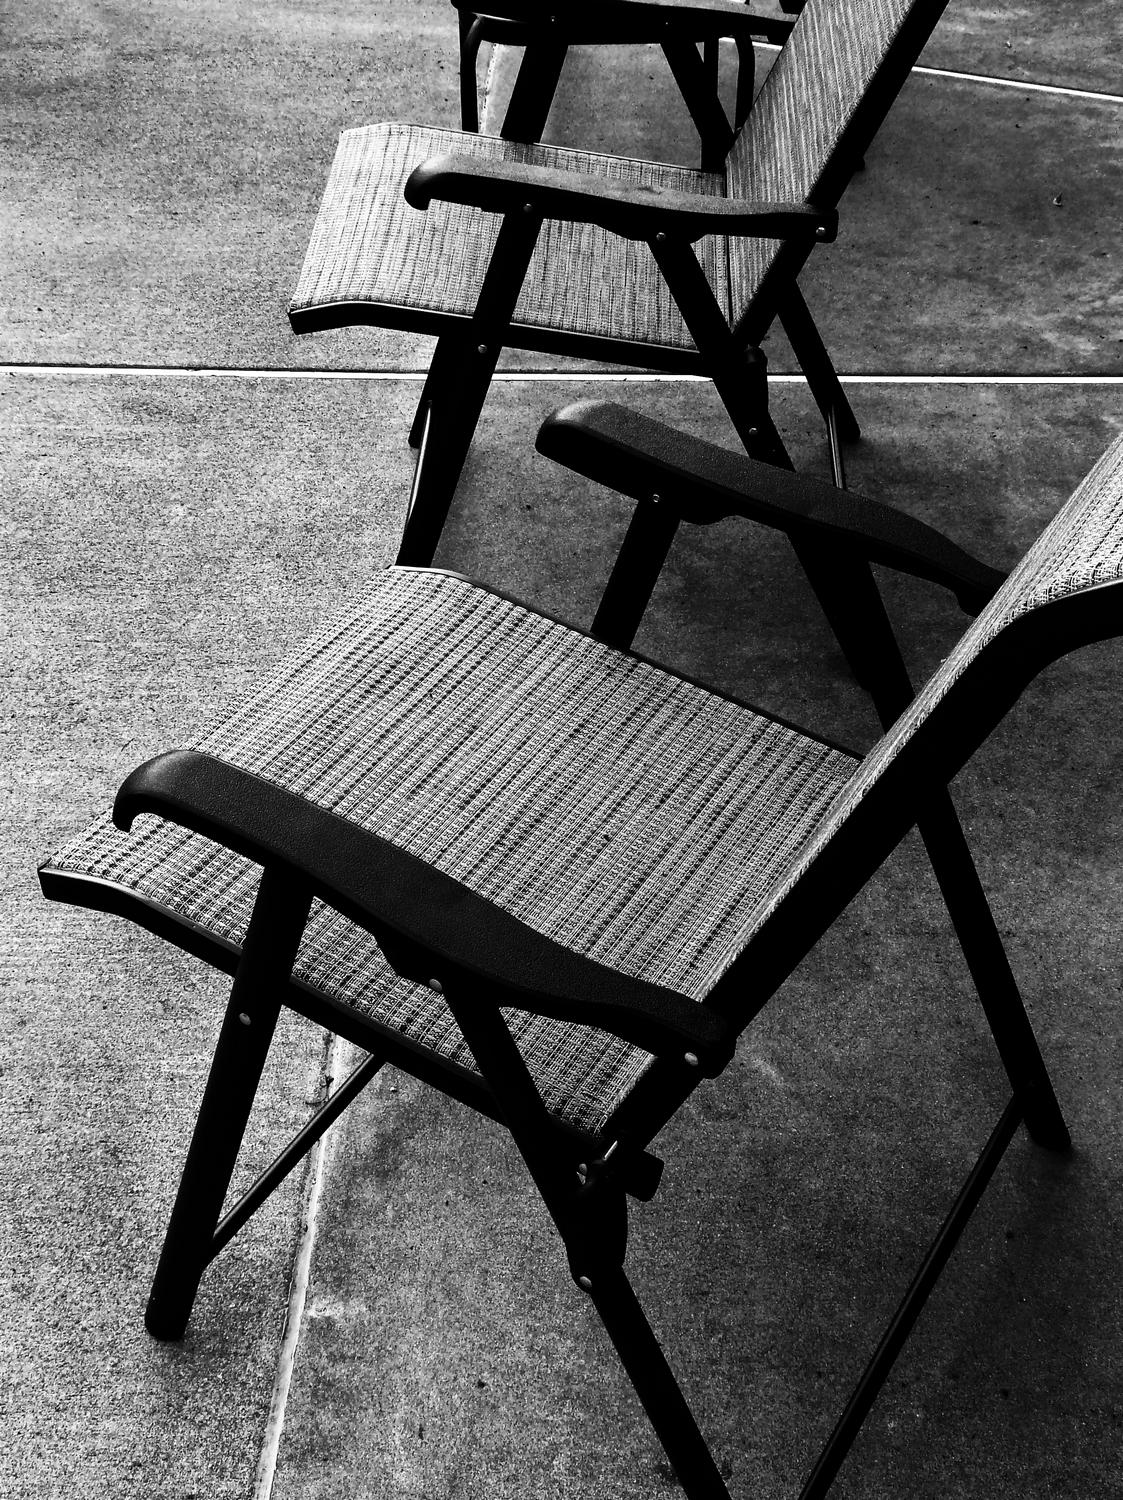 - Chairs on the deck, waiting for our return - Panasonic DMC-FZ18 - - art  - photography - by Tony Karp